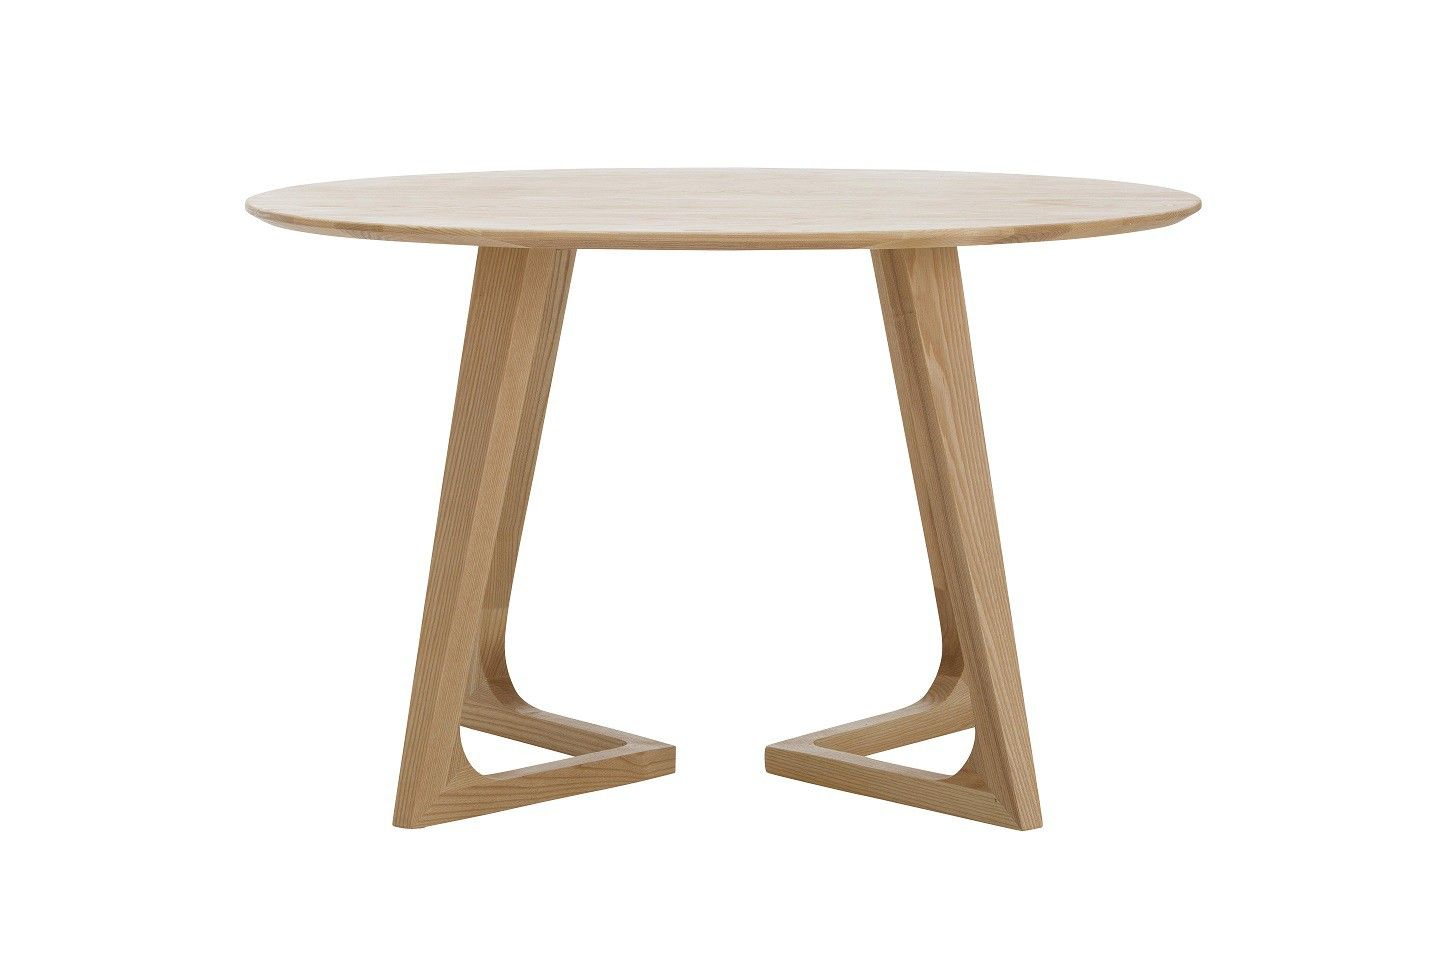 Kantet Round Dining Table For 595 00 5 Off For Members Replica Furniture Round Dining Table Dining Table Modern Scandinavian Kitchen [ 960 x 1440 Pixel ]